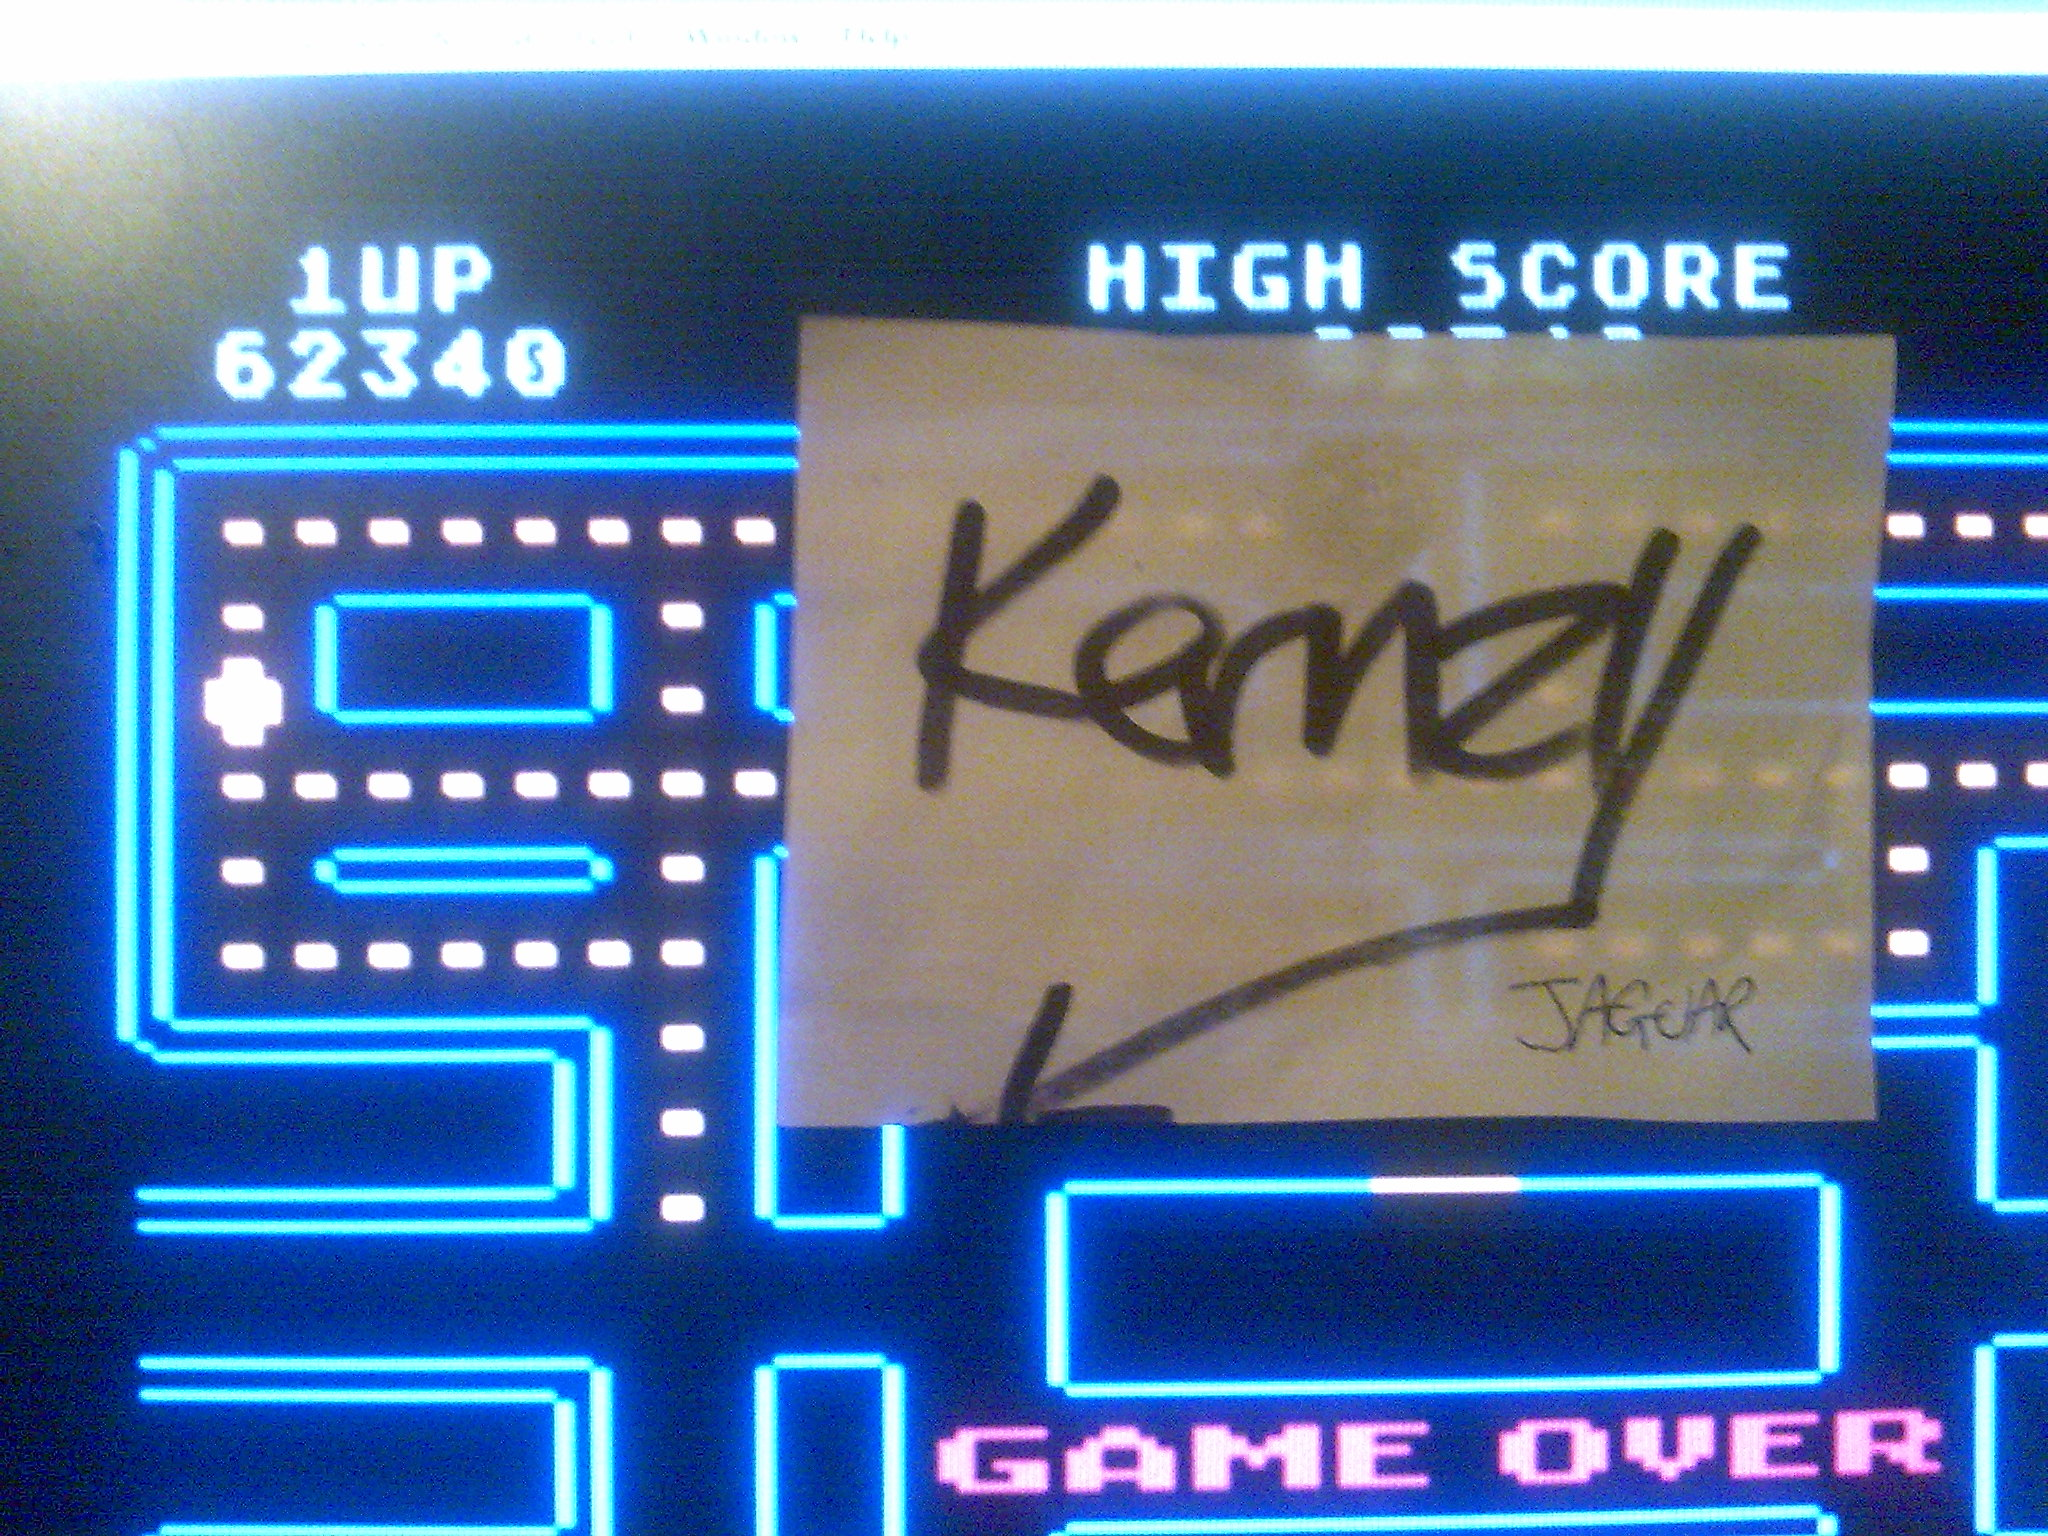 kernzy: Pac-Man [Atari Start] (Atari 400/800/XL/XE Emulated) 62,340 points on 2014-10-18 23:20:45